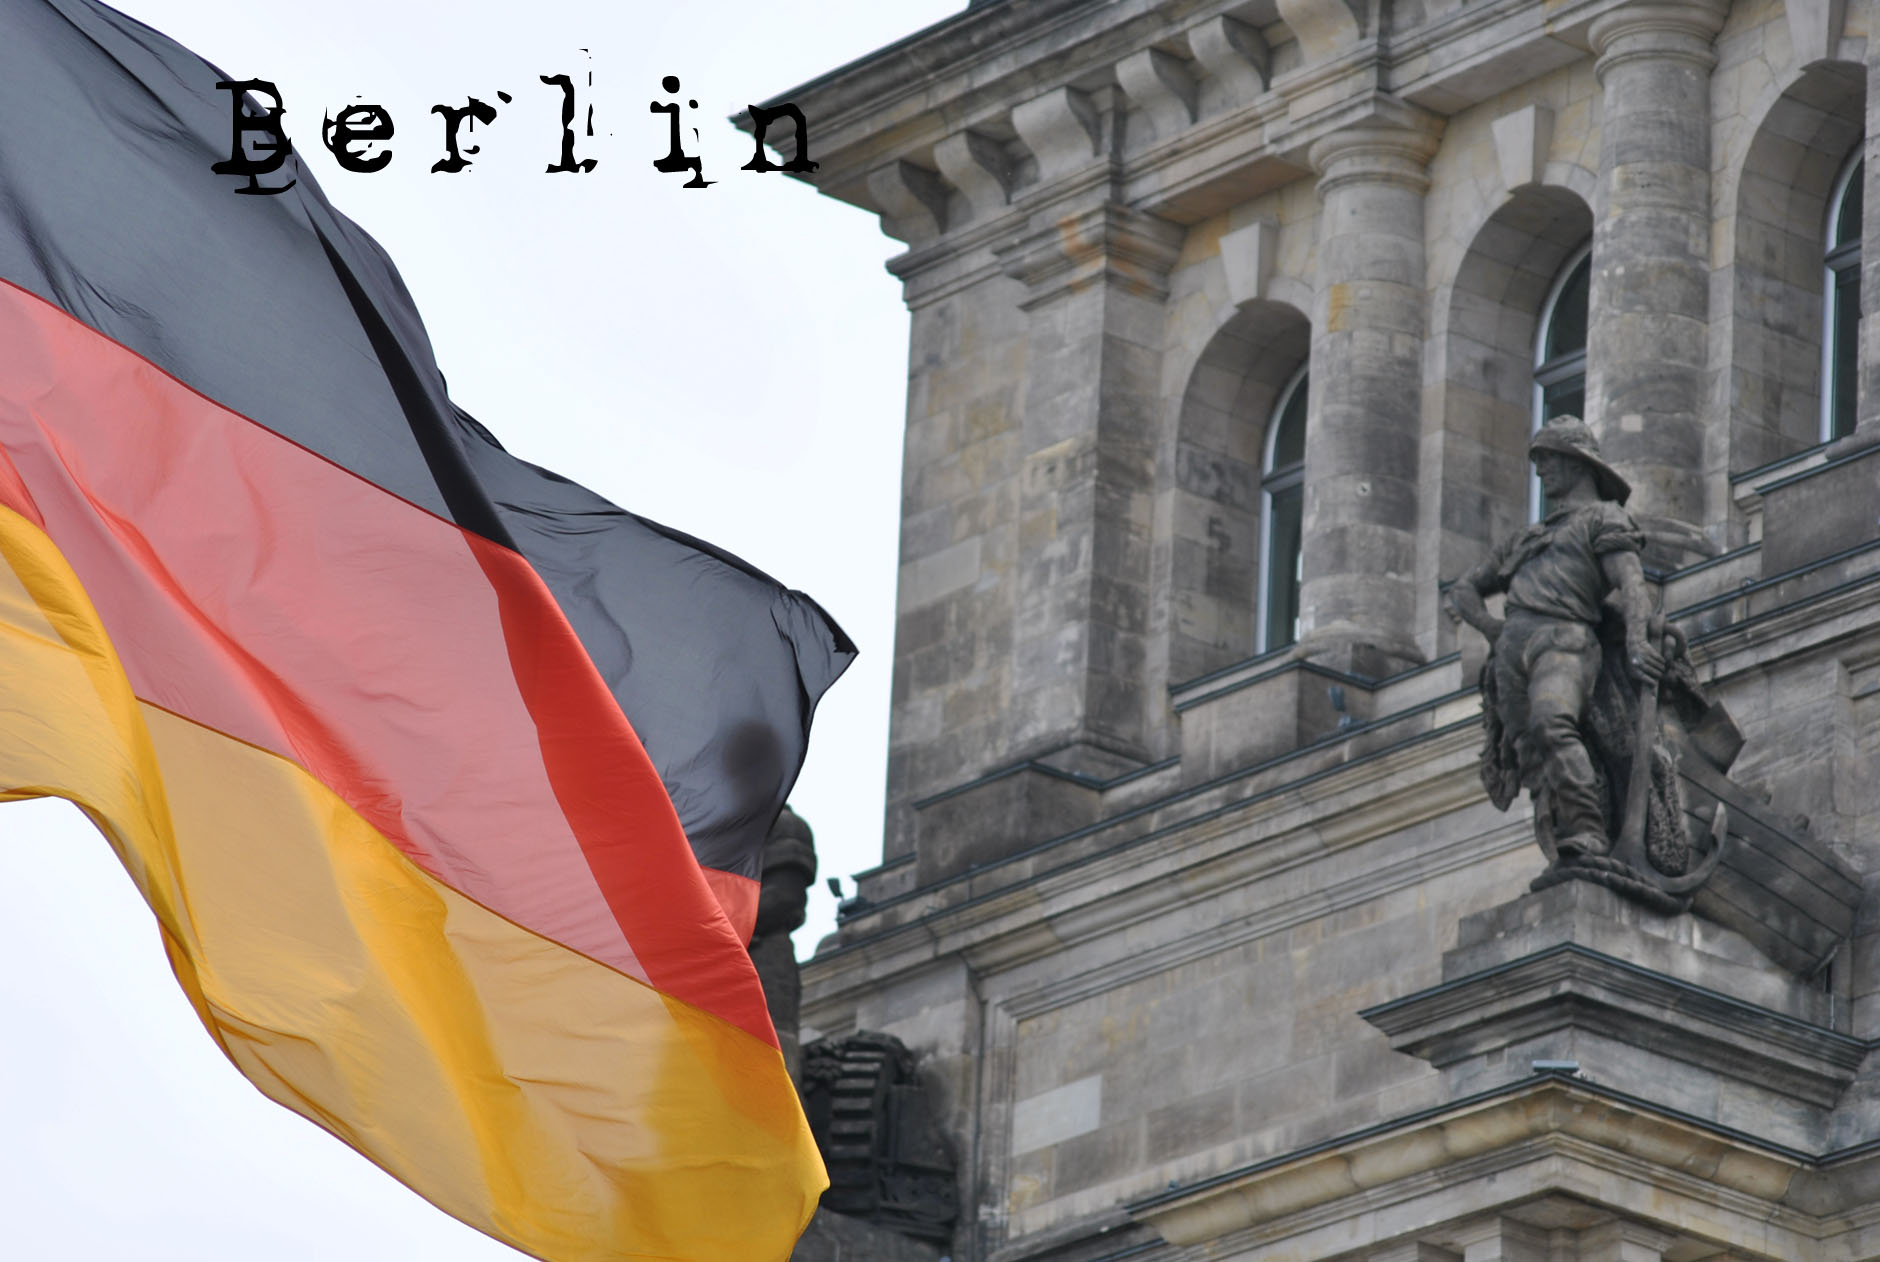 BerlinFlagDame1942Report